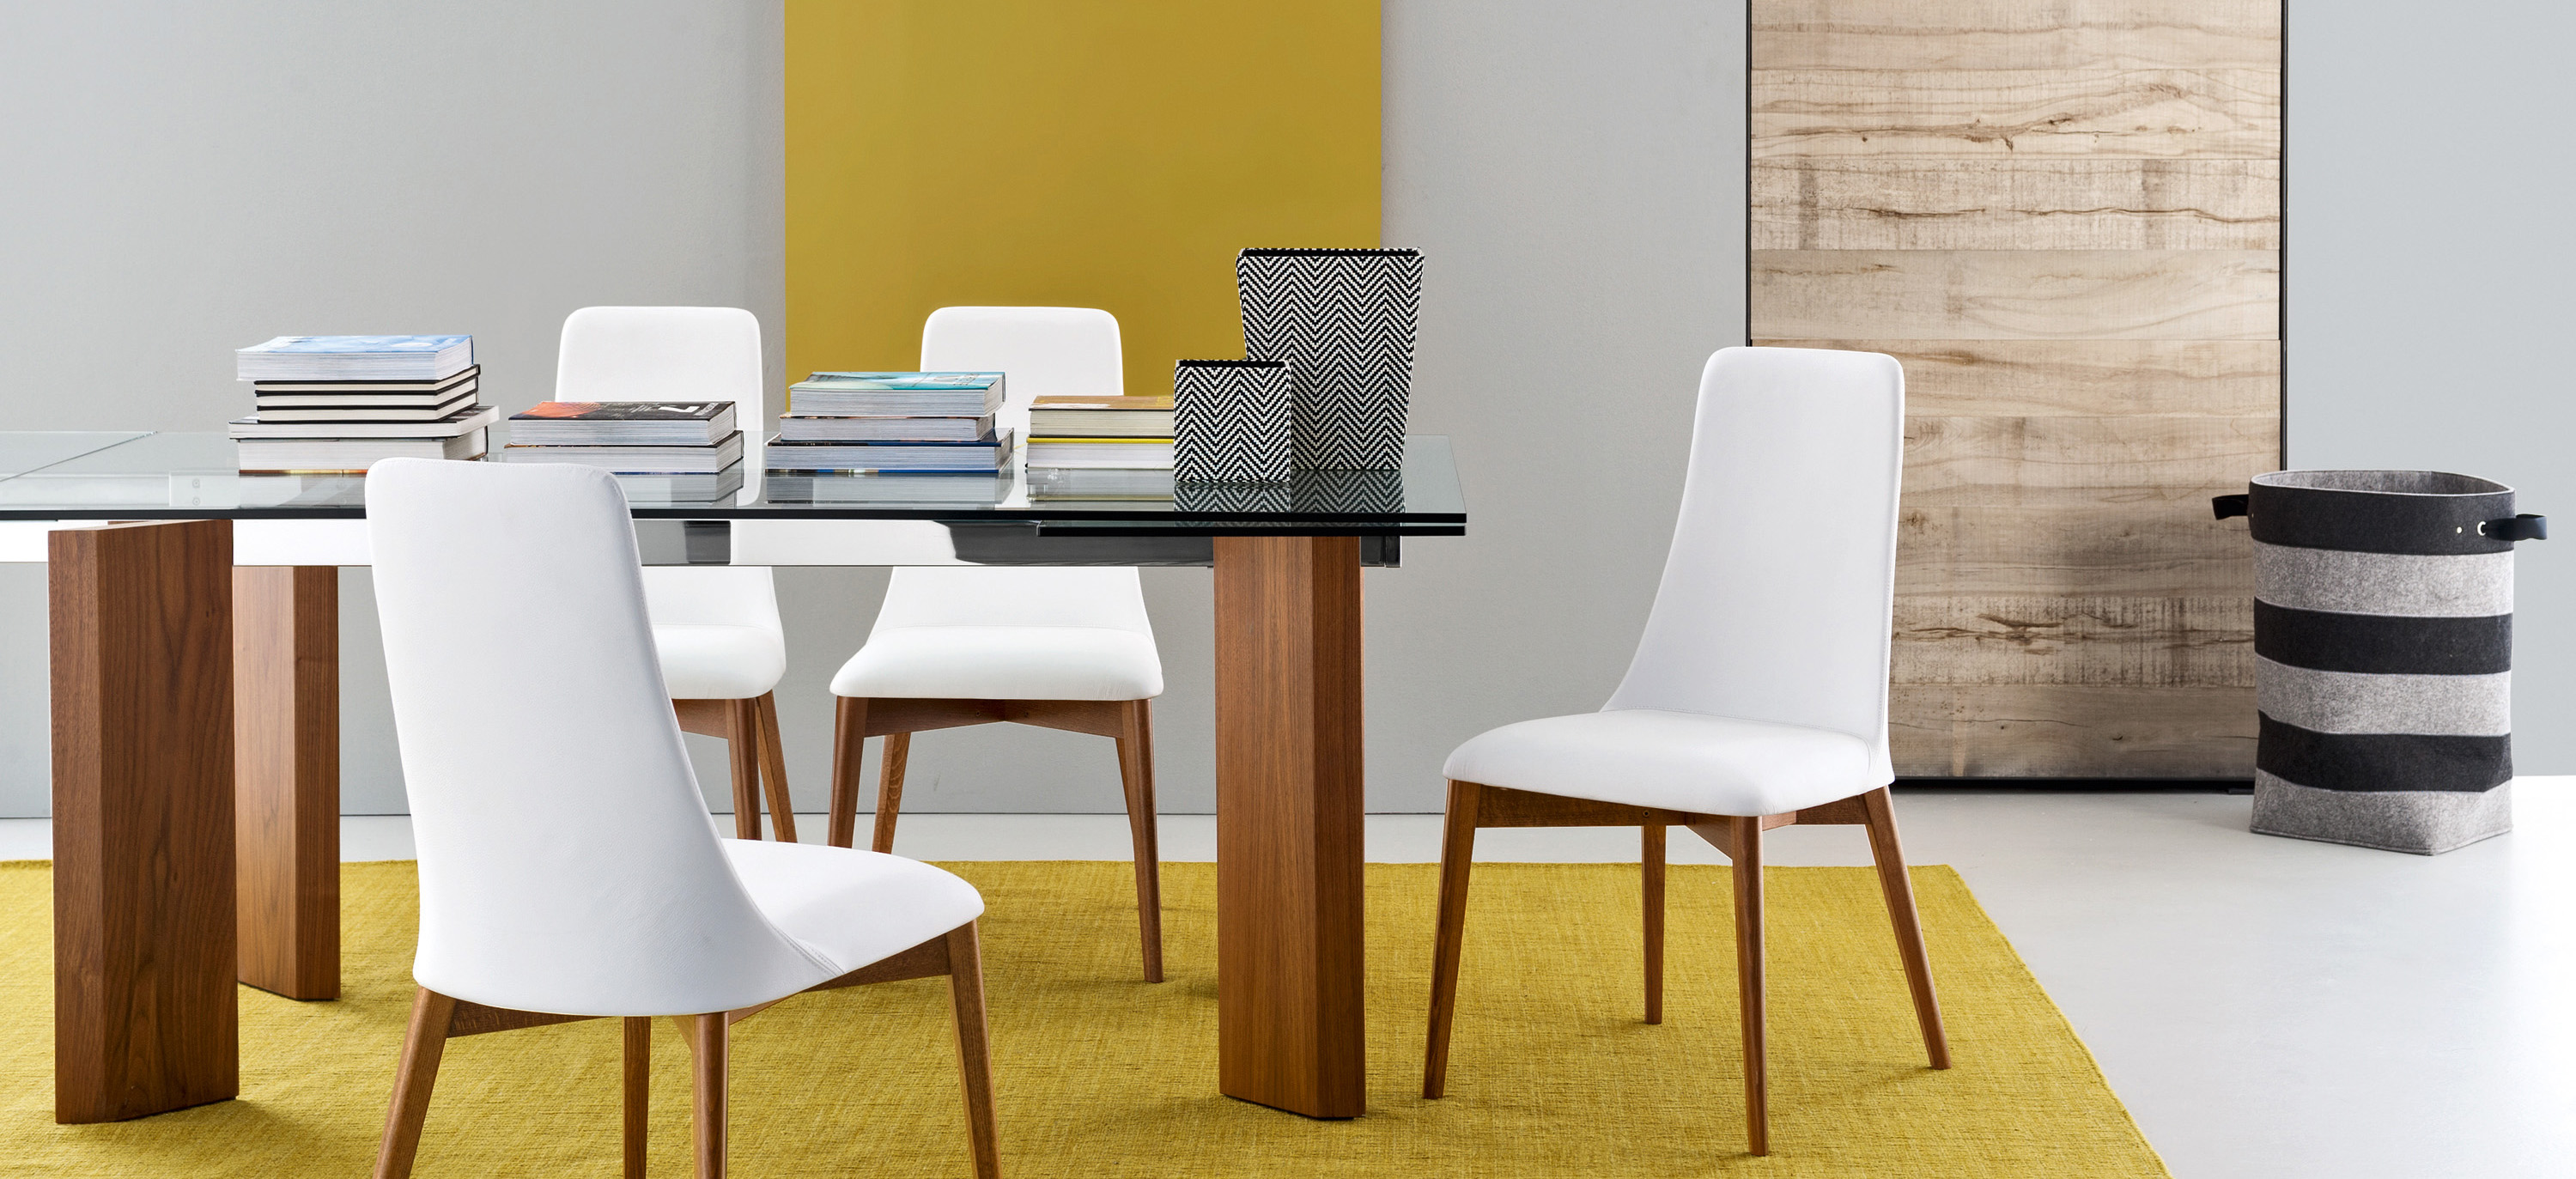 Calligaris Tower Modern Extendable Glass Dining Table  : cs4057 rlp201cs1423 lh7144 from calligaristoronto.ca size 3000 x 1373 jpeg 964kB